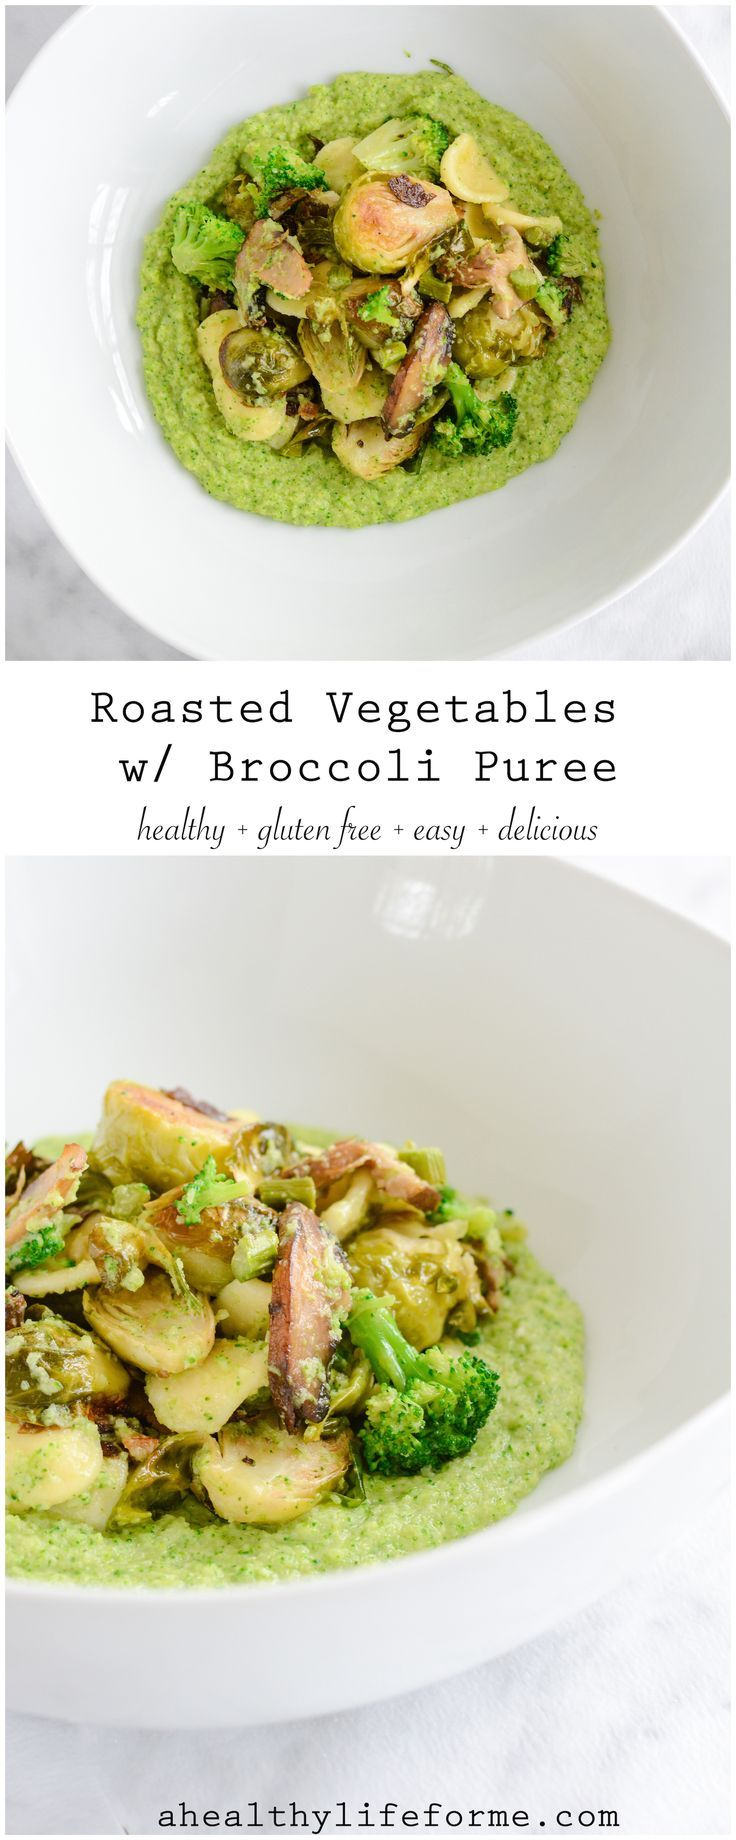 Roasted Vegetables with Broccoli Puree is a medley of roasted brussels sprouts, mushroom and asparagus that is blended with a creamy broccoli puree.  Gluten Free, Paleo Friendly, healthy, delicious and easy. - A Healthy Life For Me